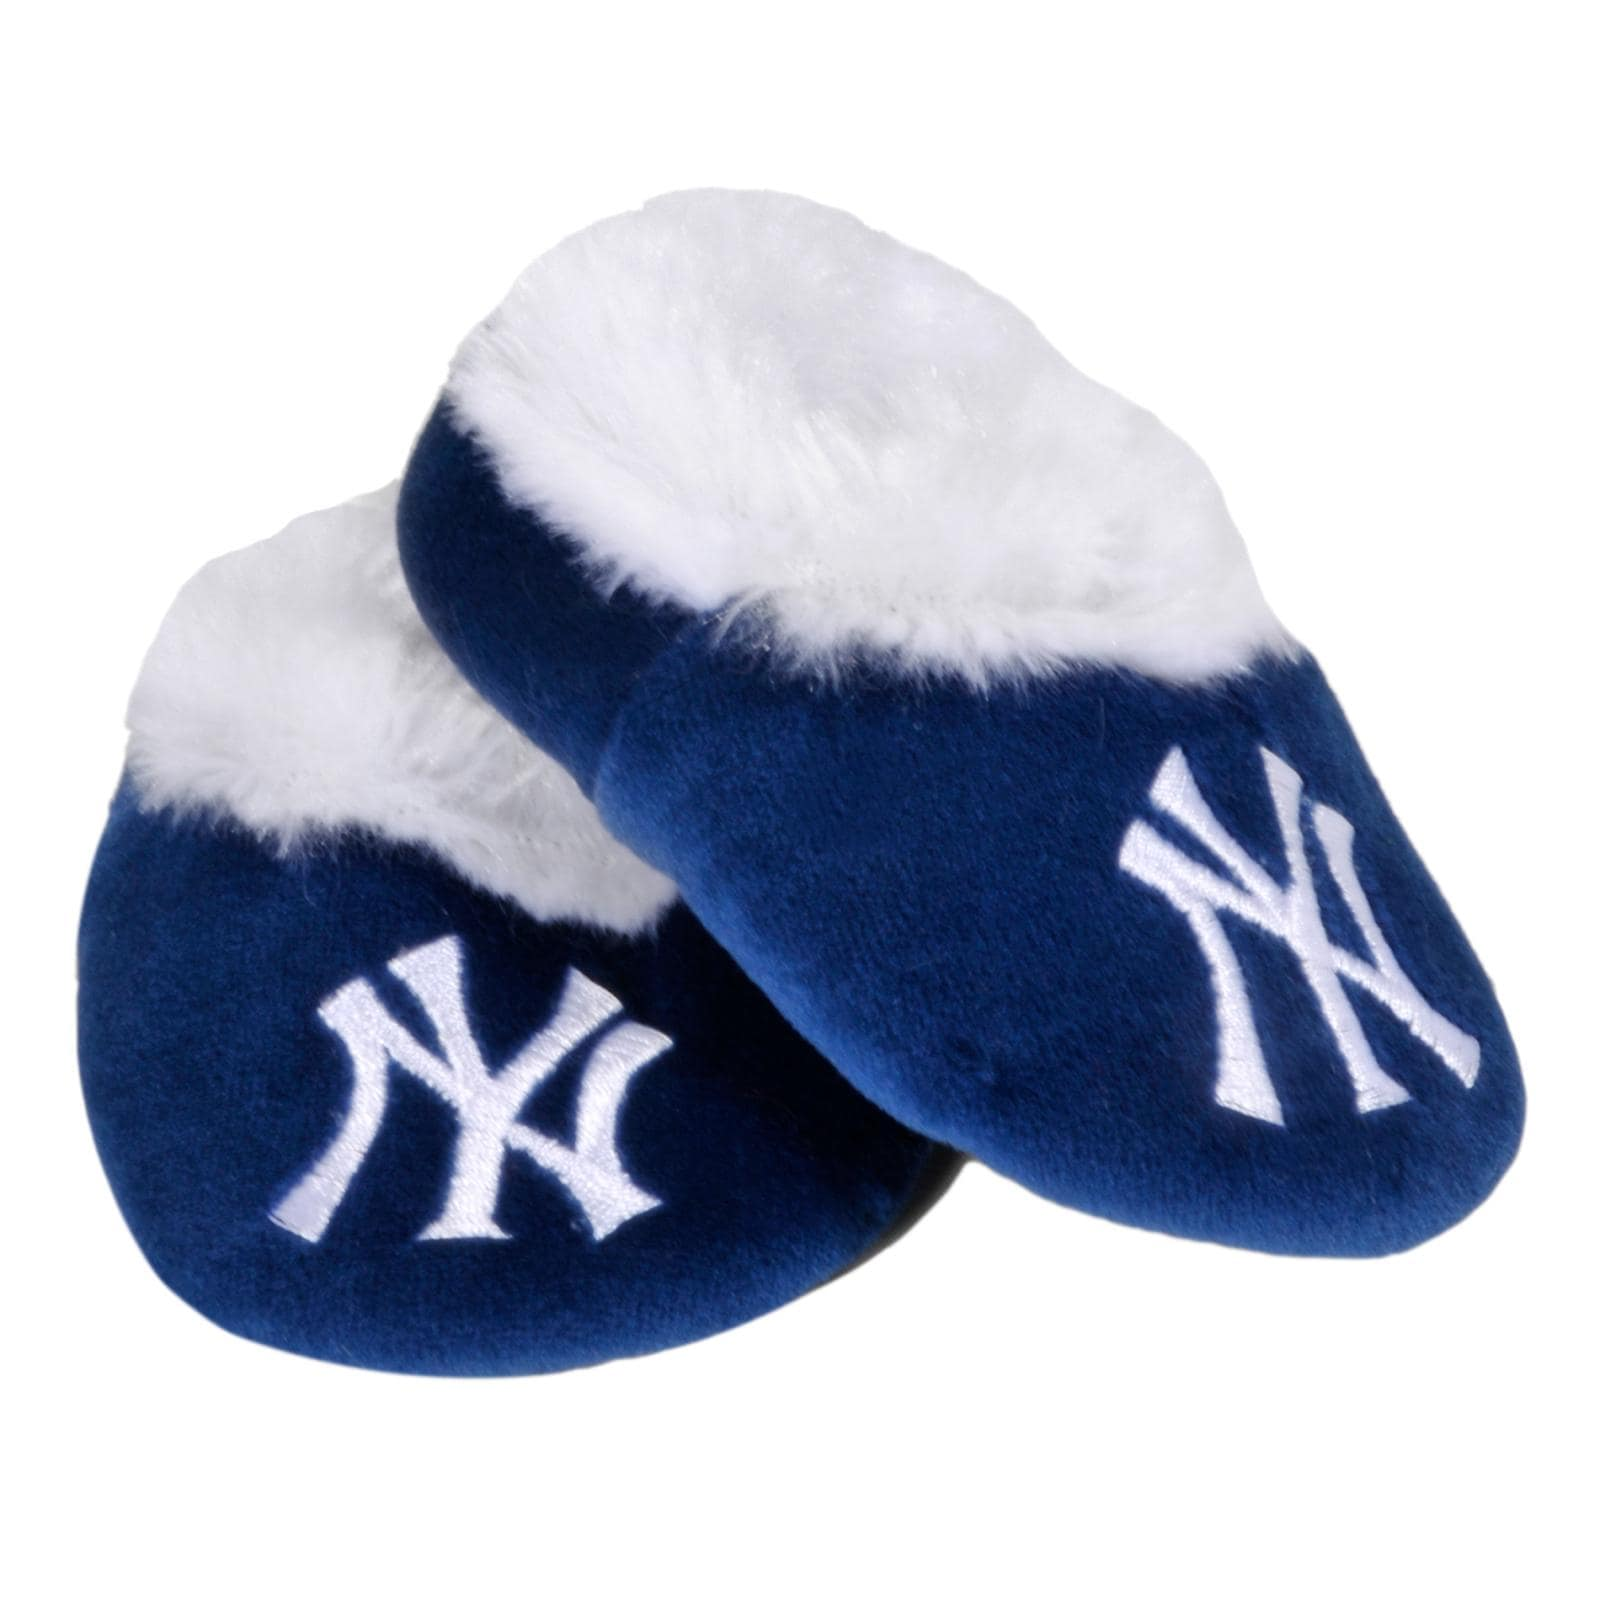 New York Yankees Baby Bootie Slippers